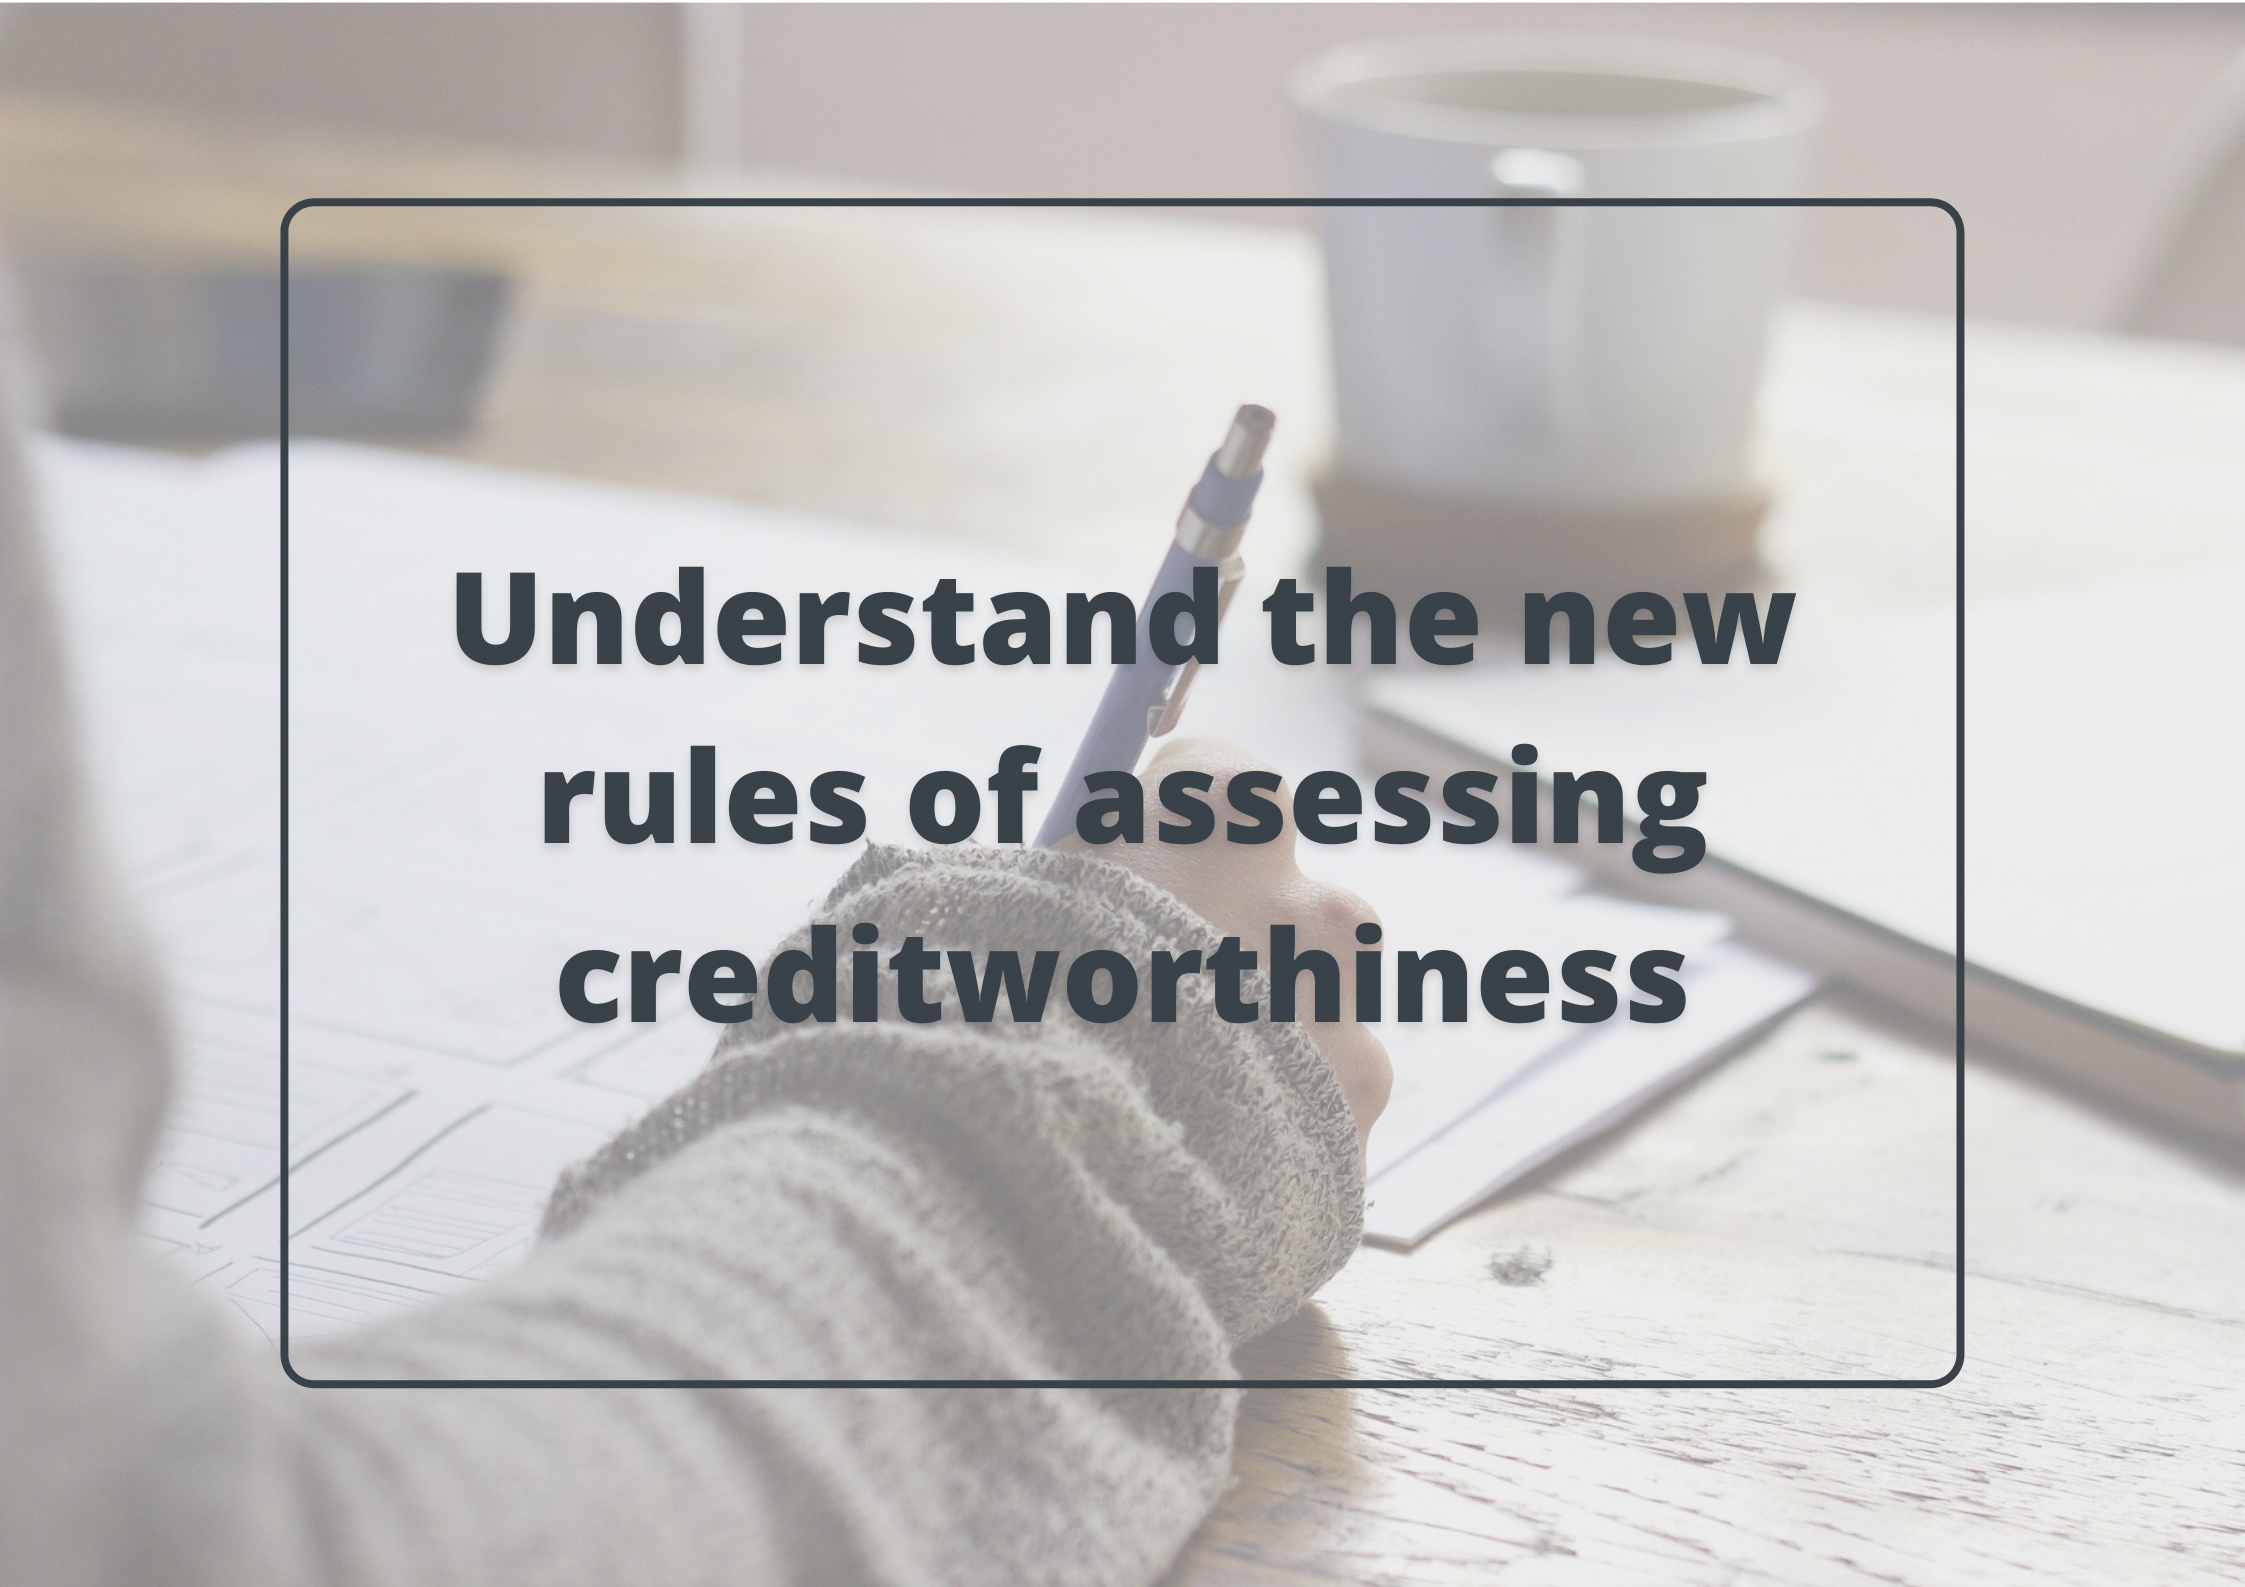 Understand the new rules of assessing creditworthiness